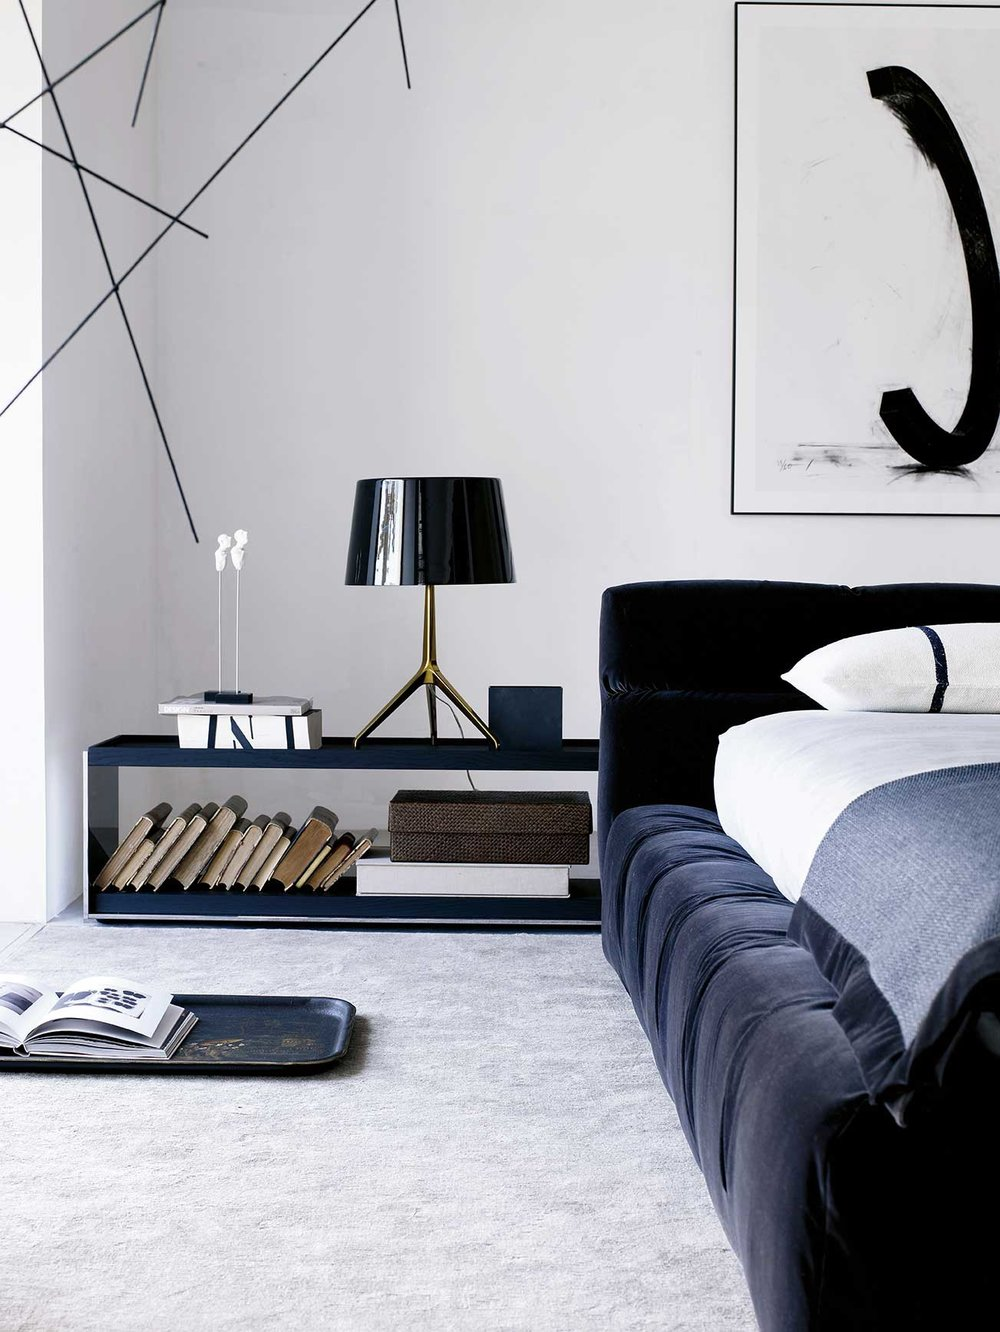 A Foscarini Lumiere table lamp sits on a large side table beside a B&B Italia Tufty-Bed.